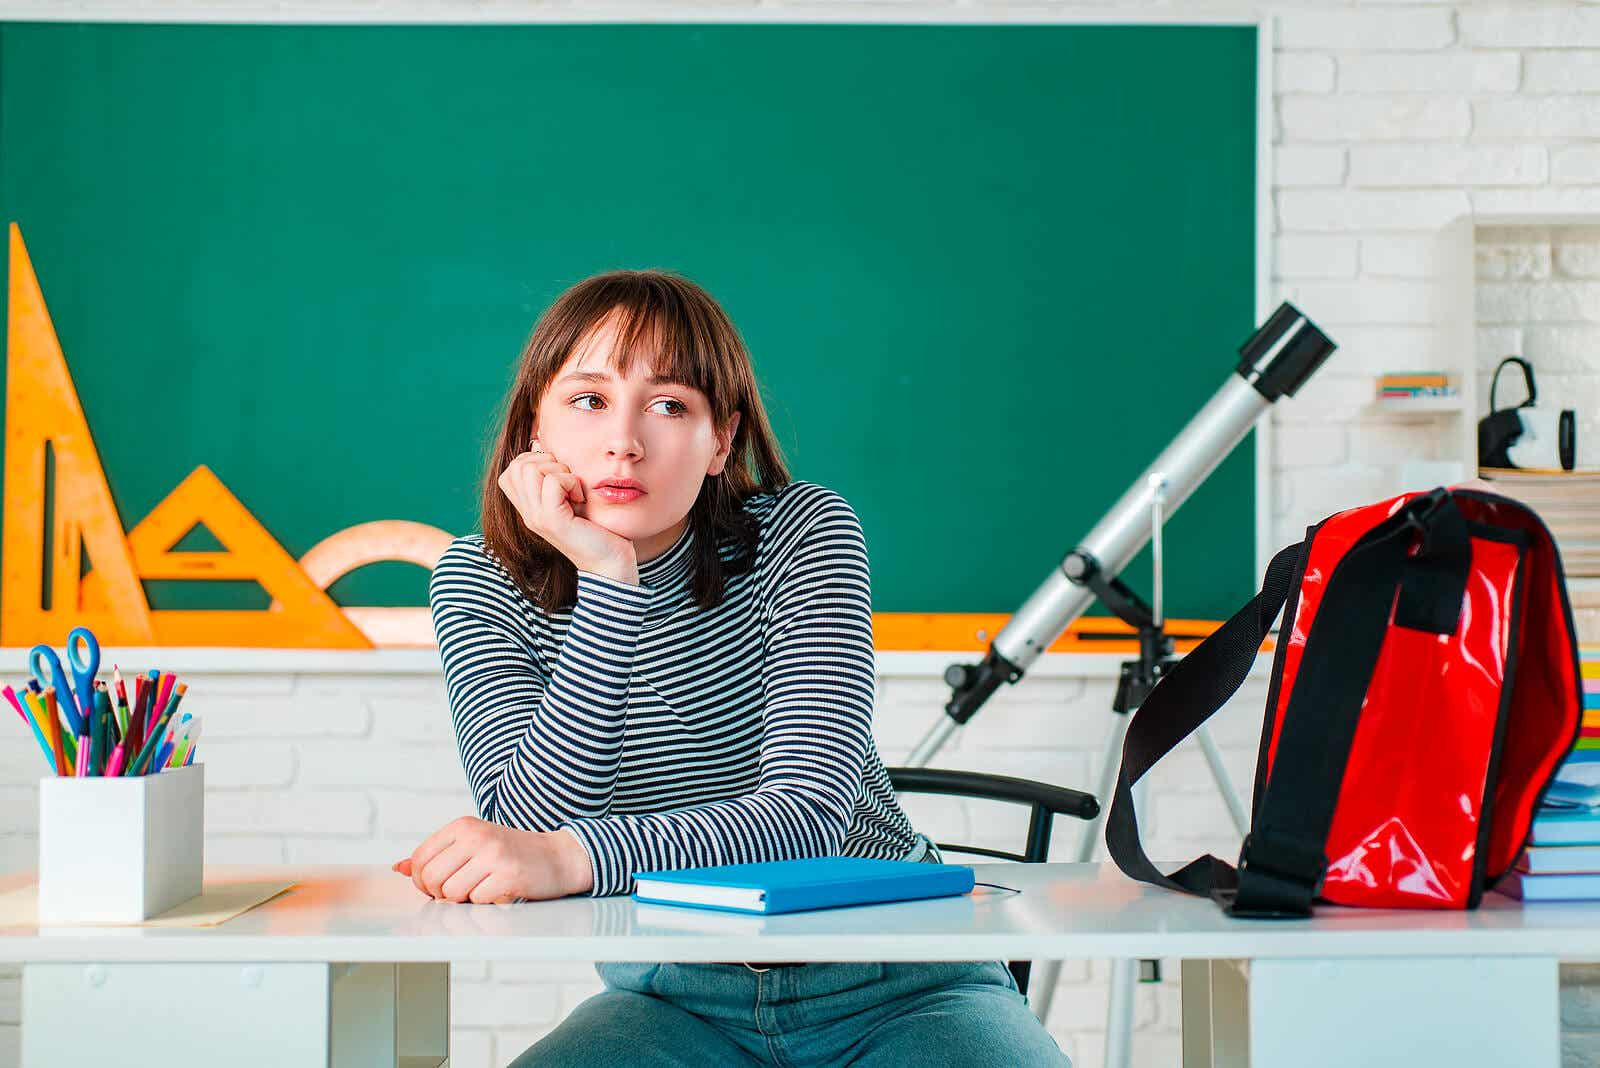 A teenager sitting in a classroom thinking.